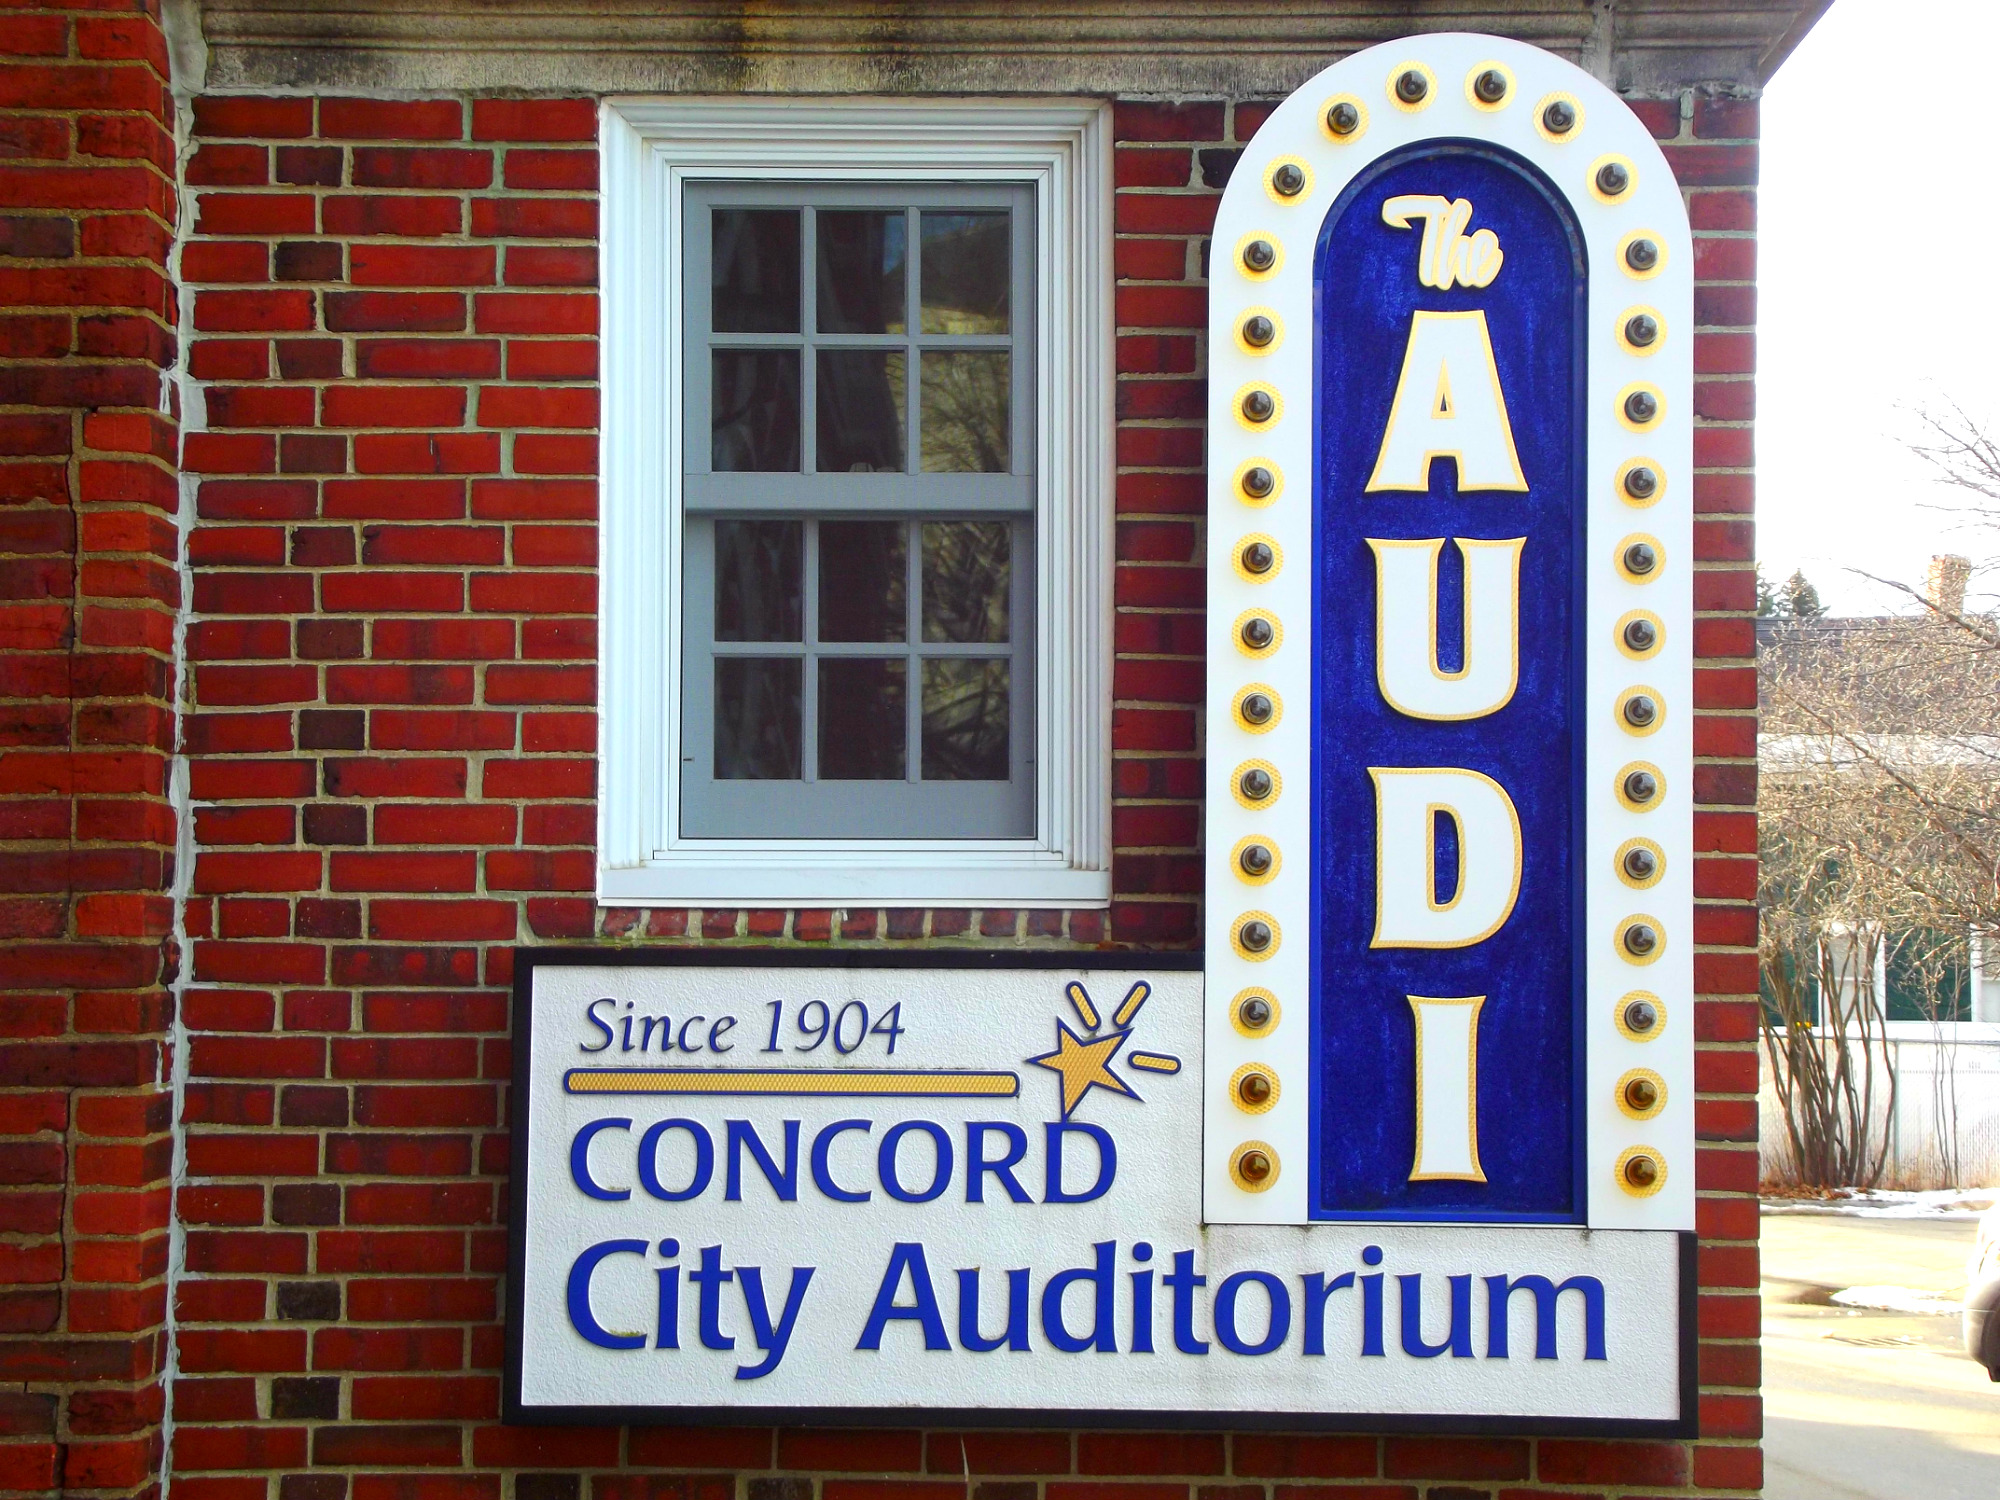 Concord NH Official Website The Audi - Audi concord nh